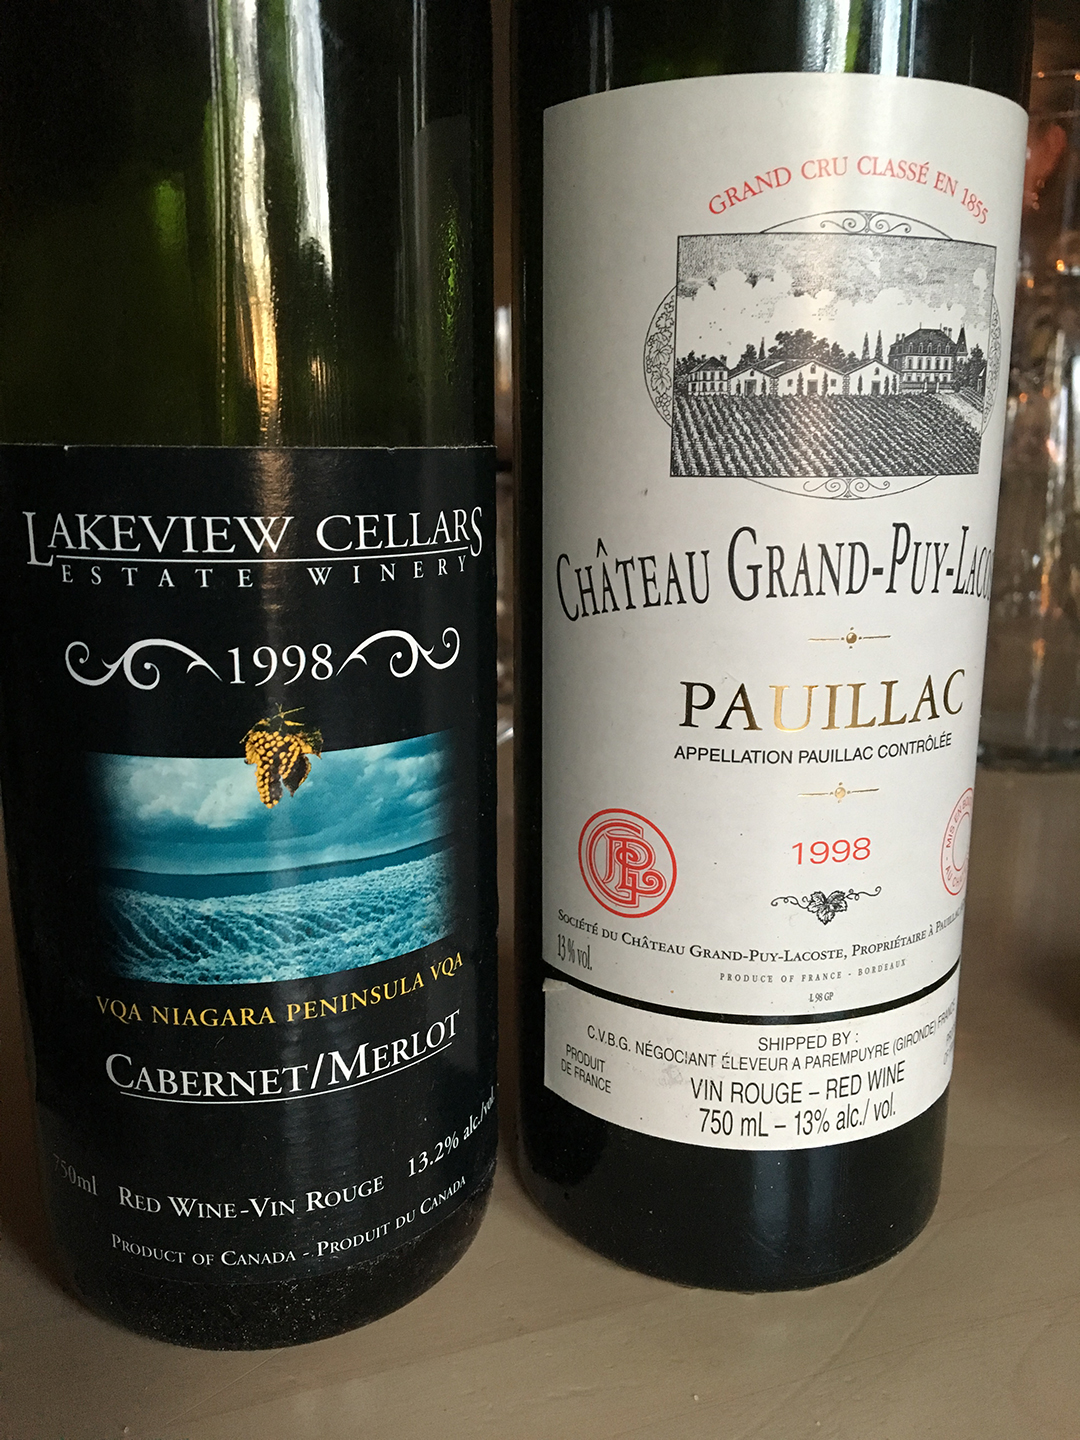 Lakeview Cellars Cabernet/Merlot 1998 and Château Grand-Puy-Lacoste 1998